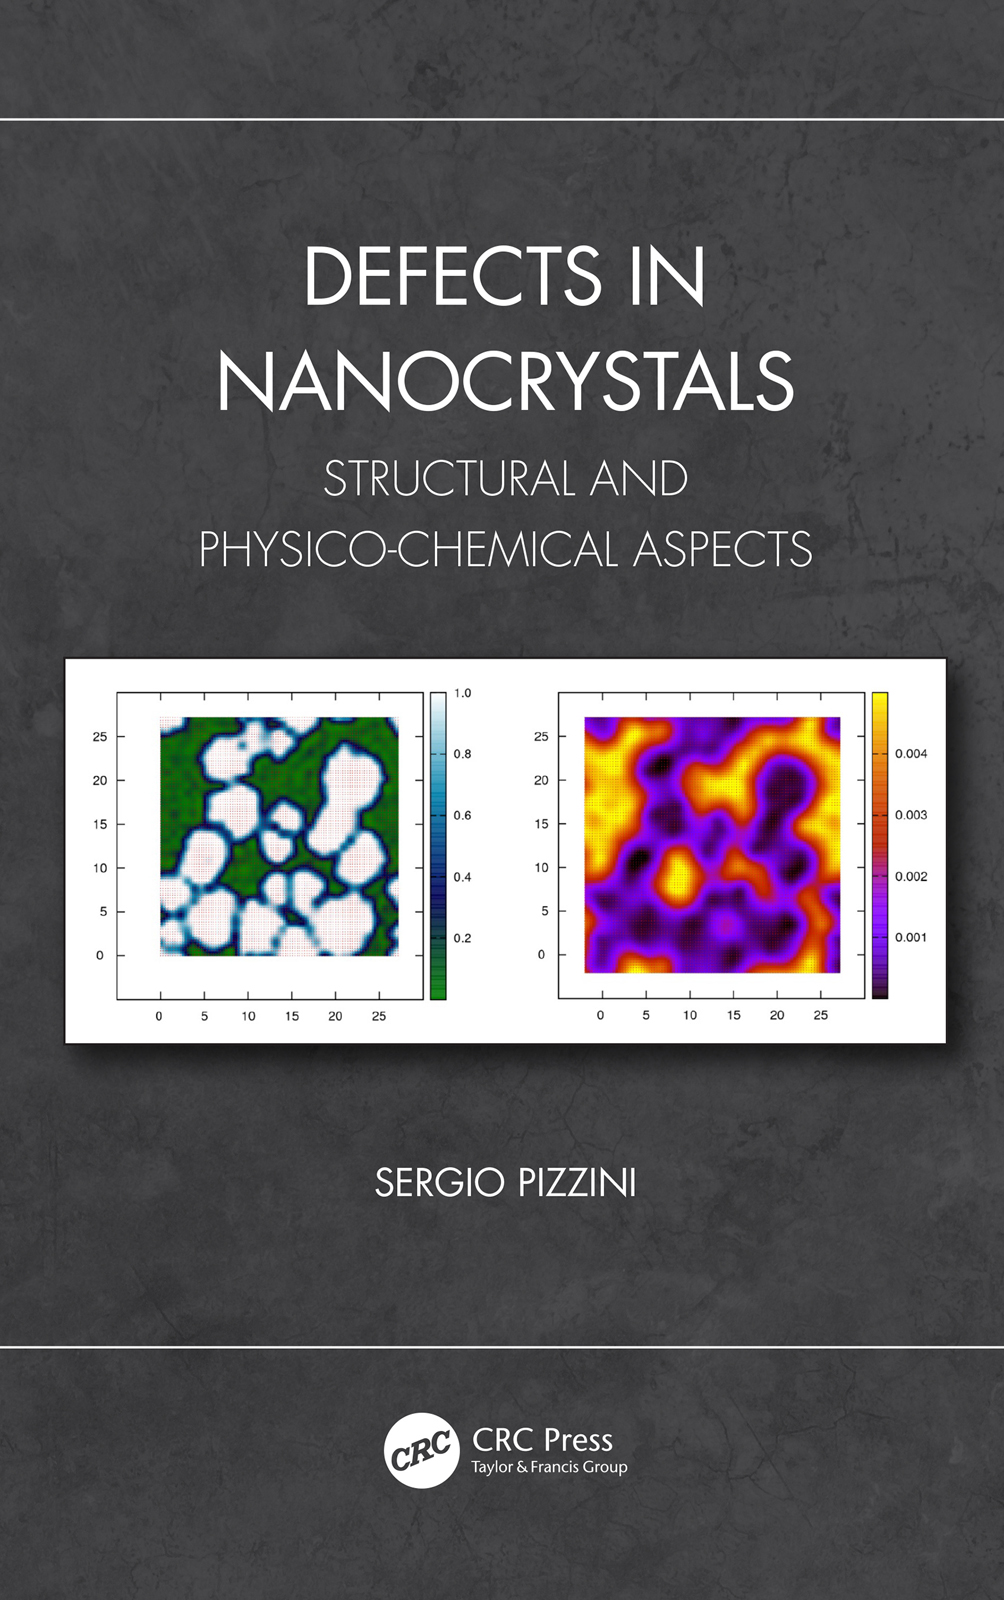 Defects in Nanocrystals